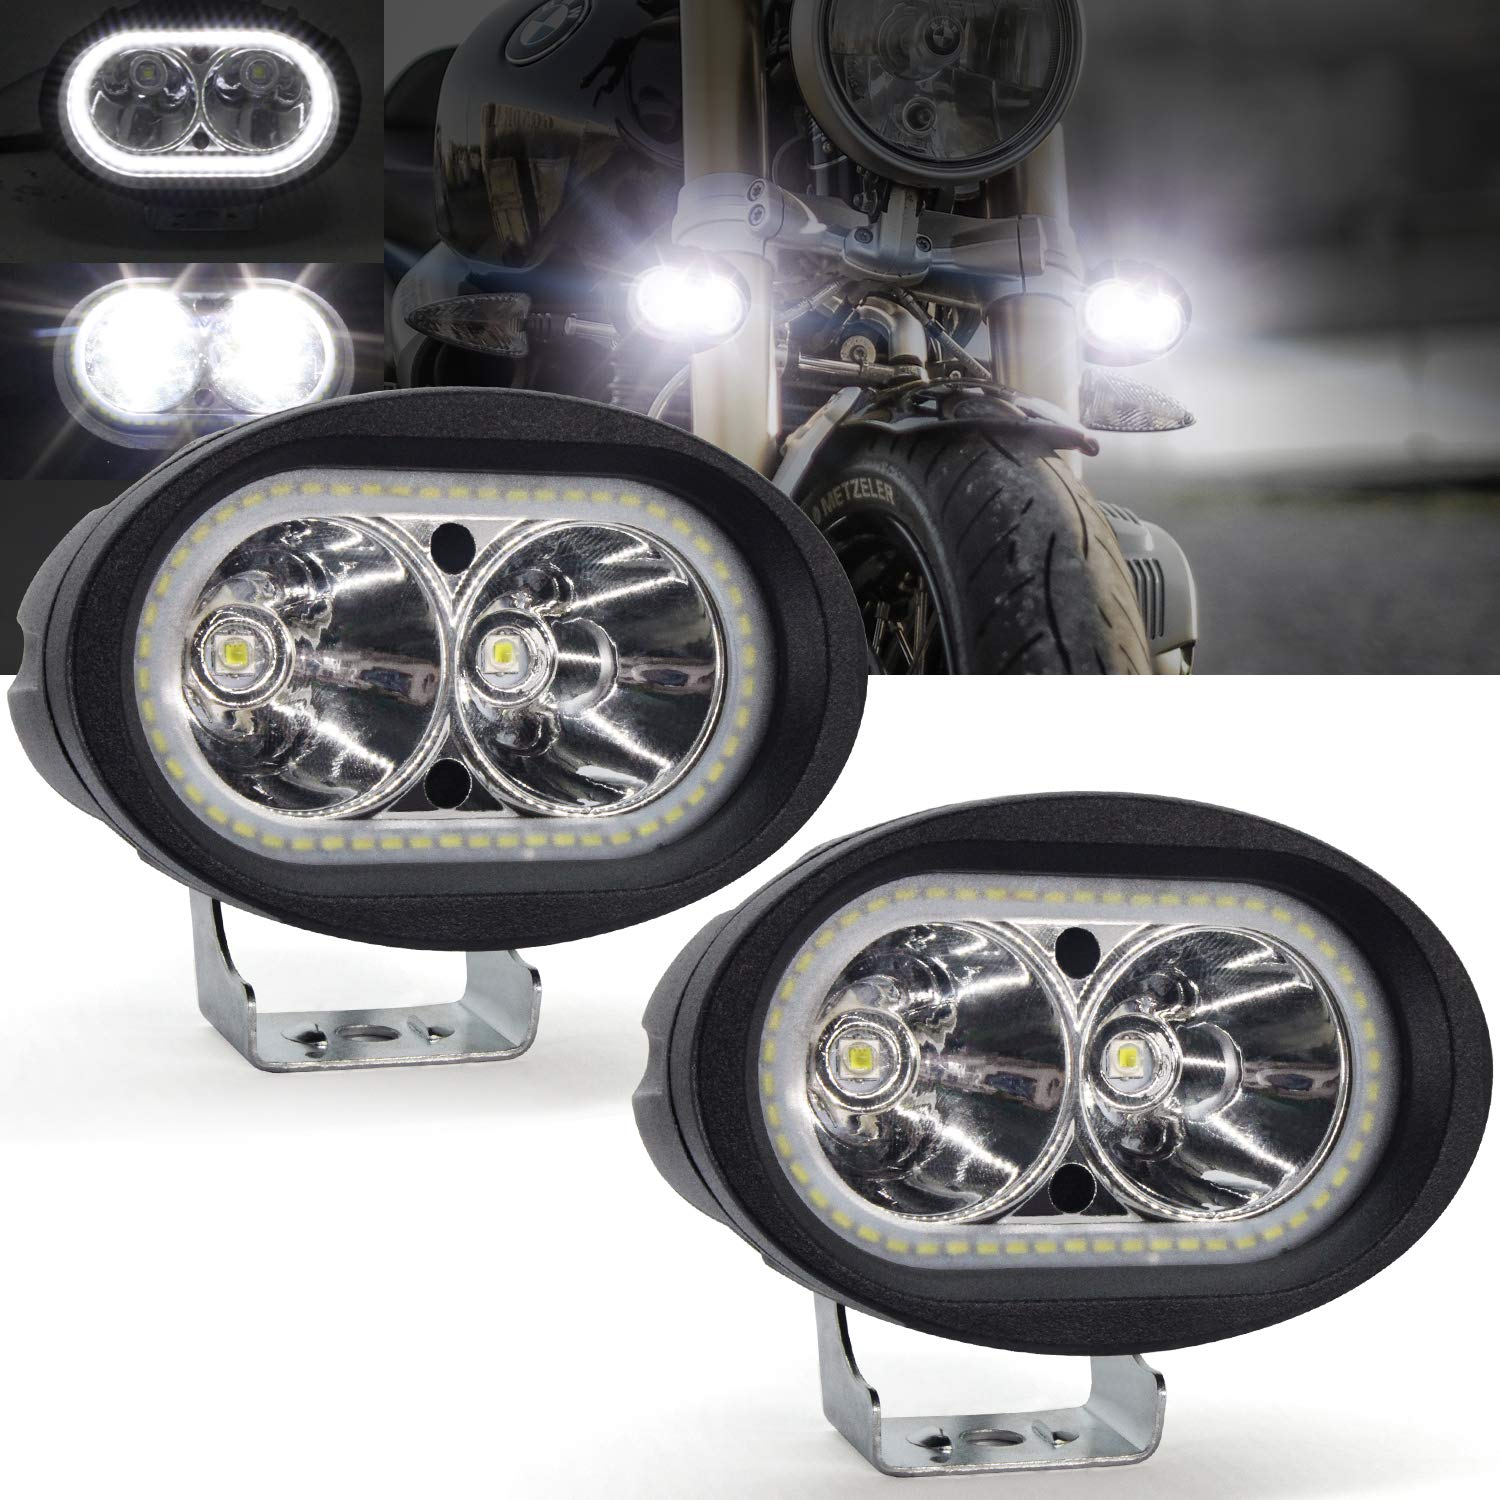 40W Motorcycle Auxiliary Lights Motorcycle LED Headlights Front Spotlights 12V 24V 3600LM Motorbike Fog Driving Light Daytime Running Lights with Switch for Scooters Trikes and Quads Truck Boat